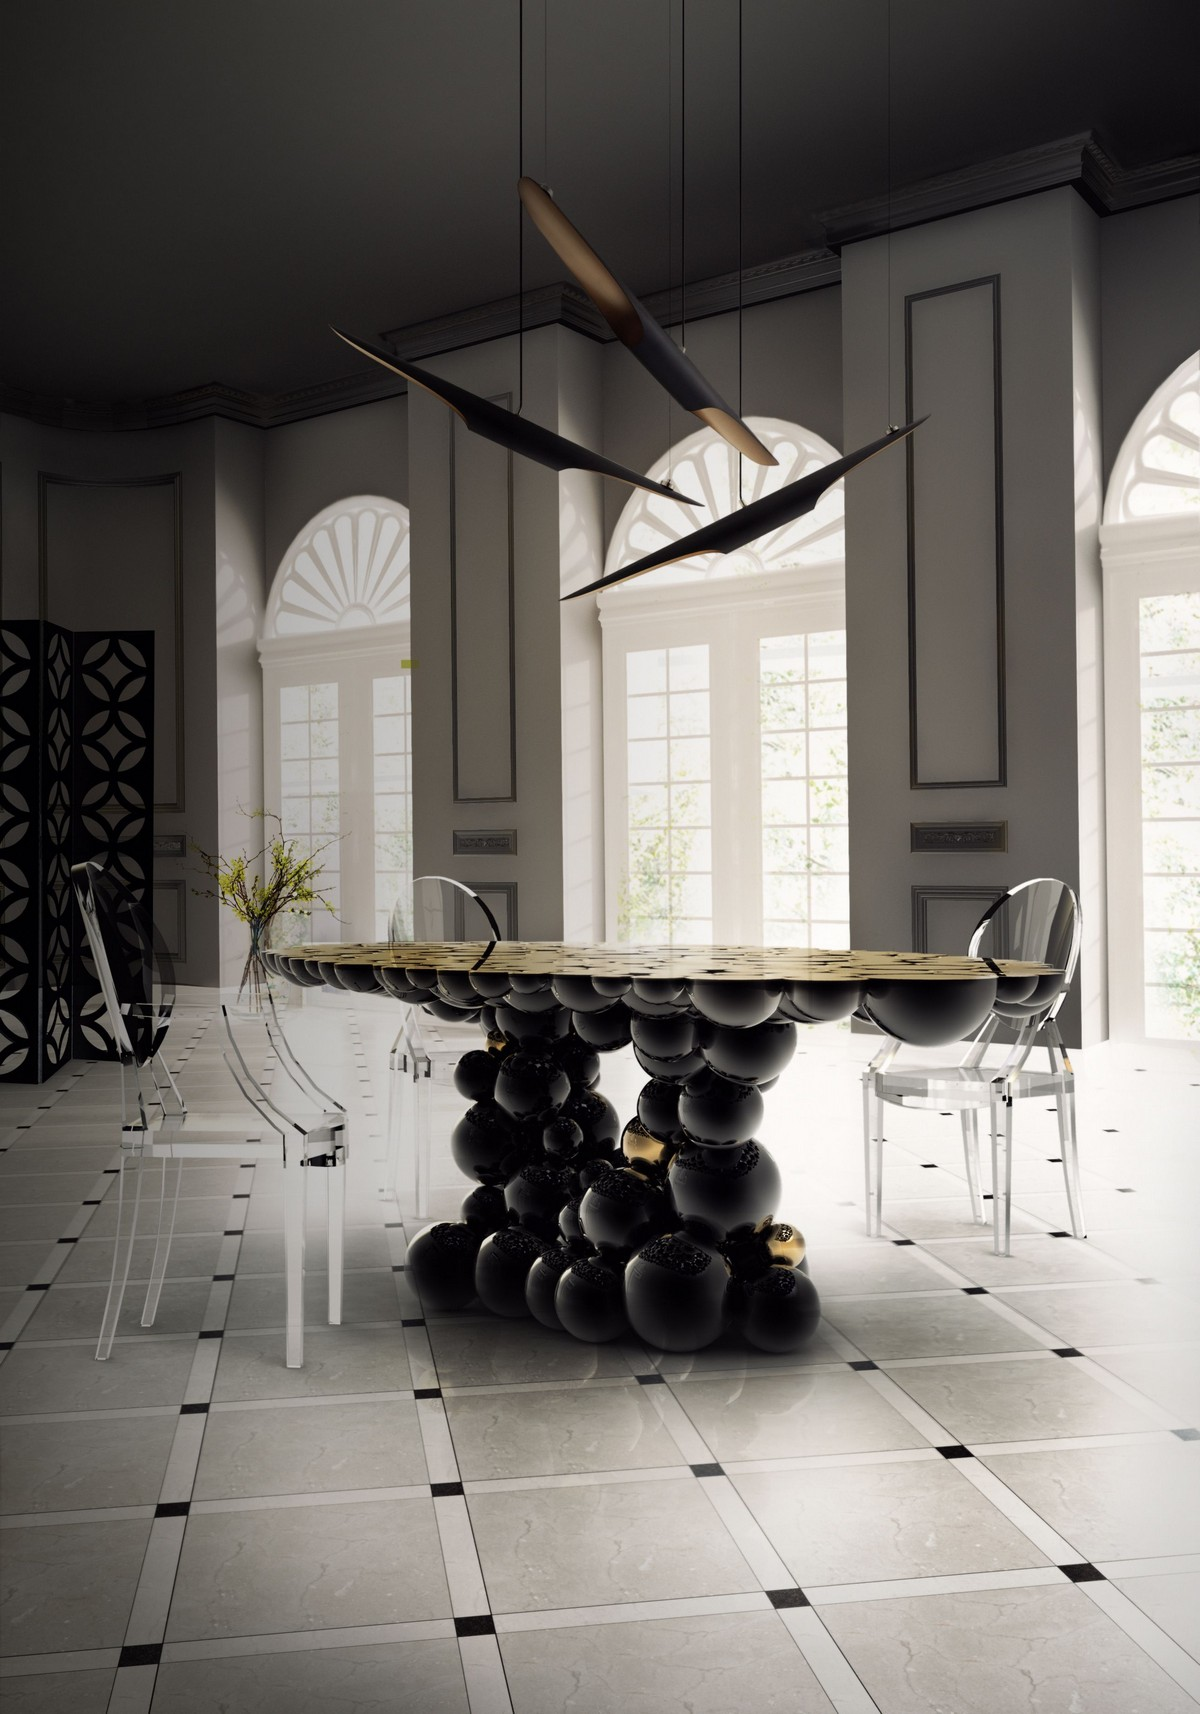 5 Modern Dining Table Designs You Shouldn't Miss modern dining table designs 5 Modern Dining Table Designs You Shouldn't Miss newton